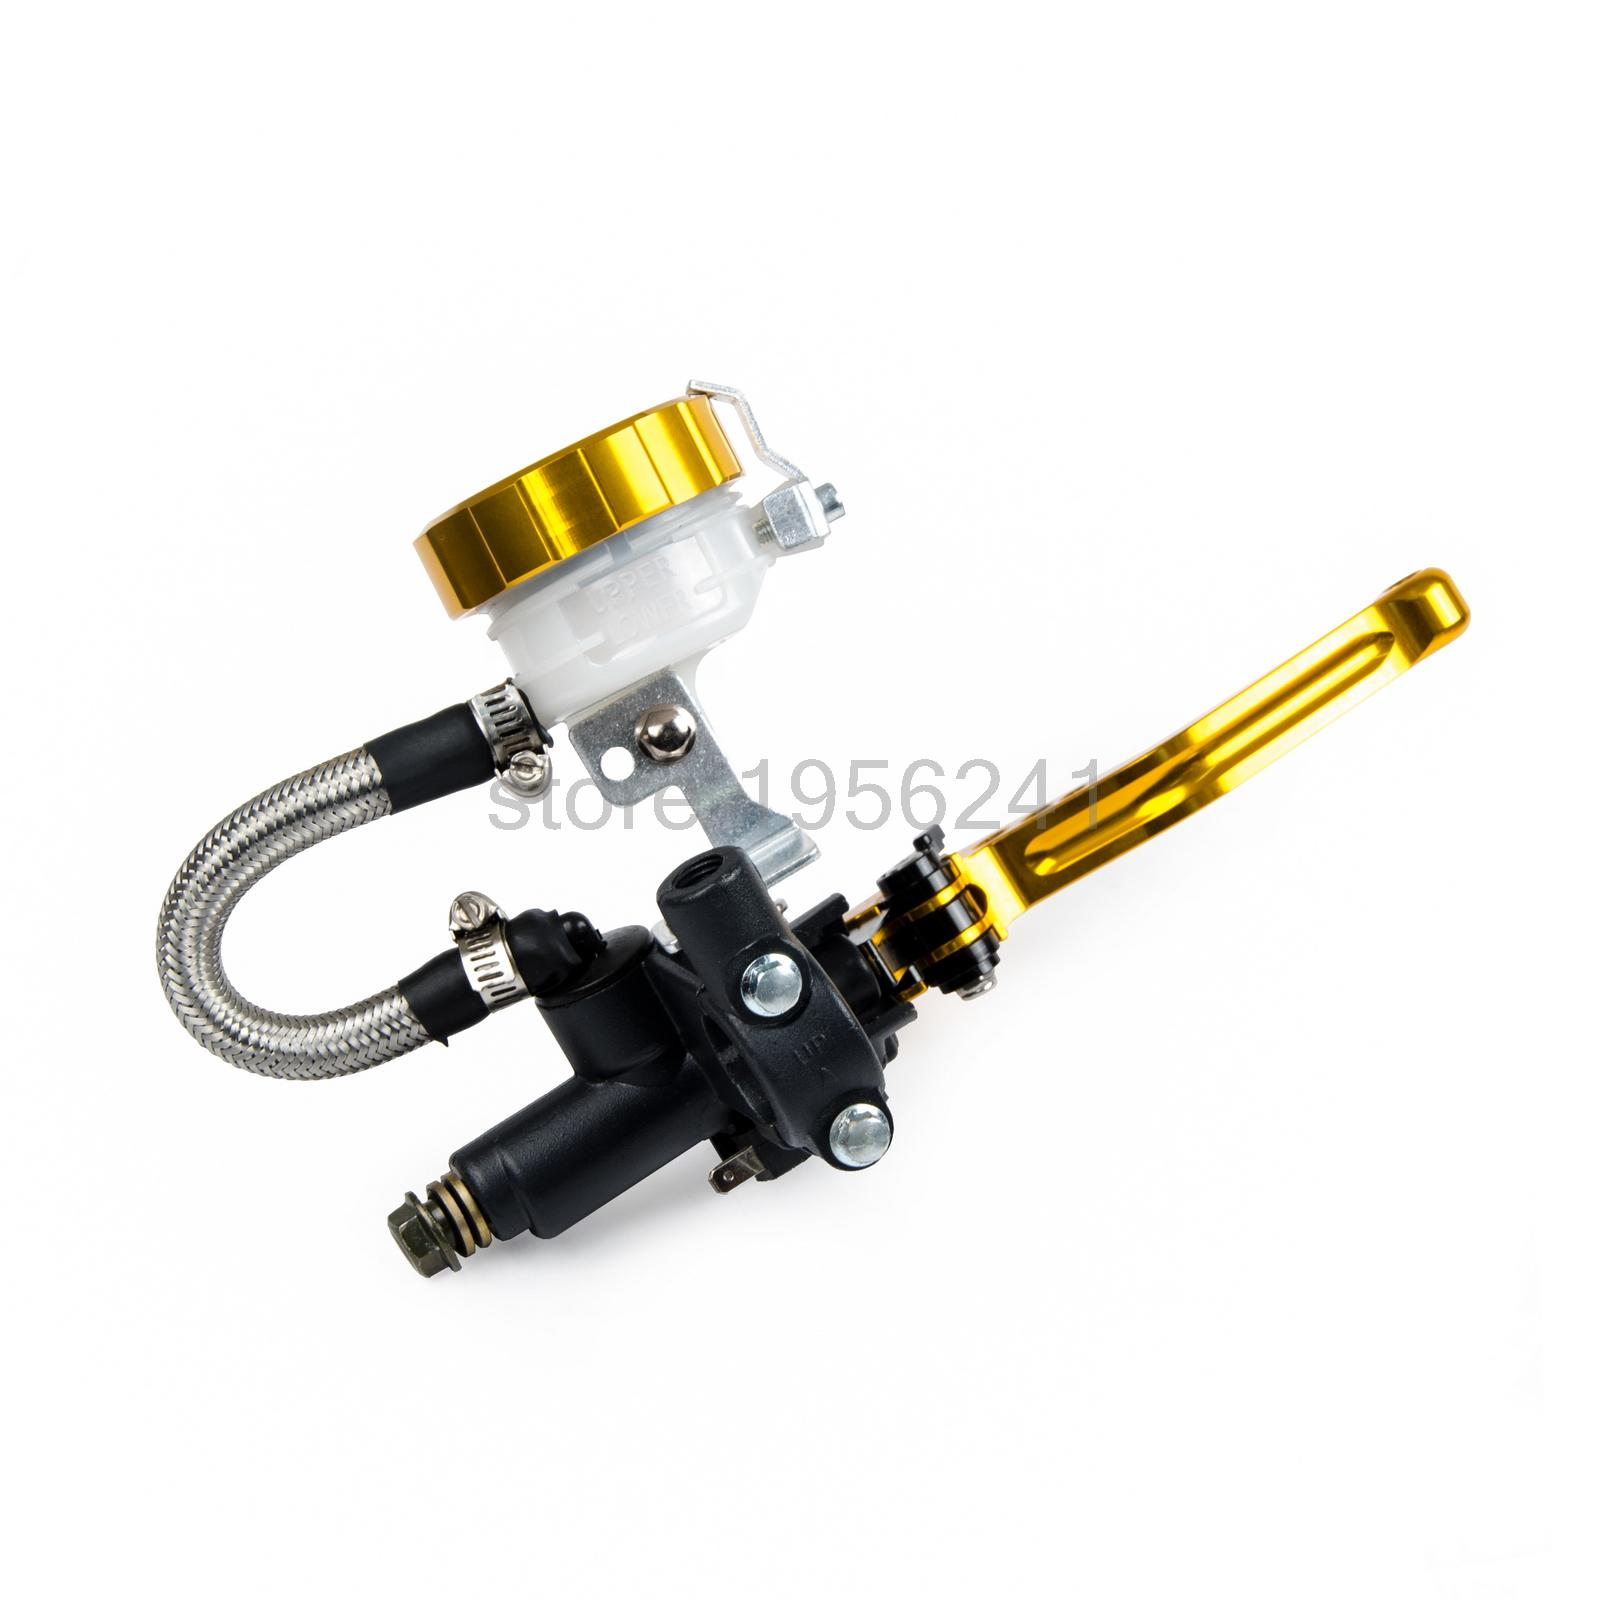 Aliexpress com buy new motocross 7 8 brake master cylinder reservoir lever for suzuki rmz 250 450 rm85 125 250 dr250r drz400s sm rmx250s from reliable